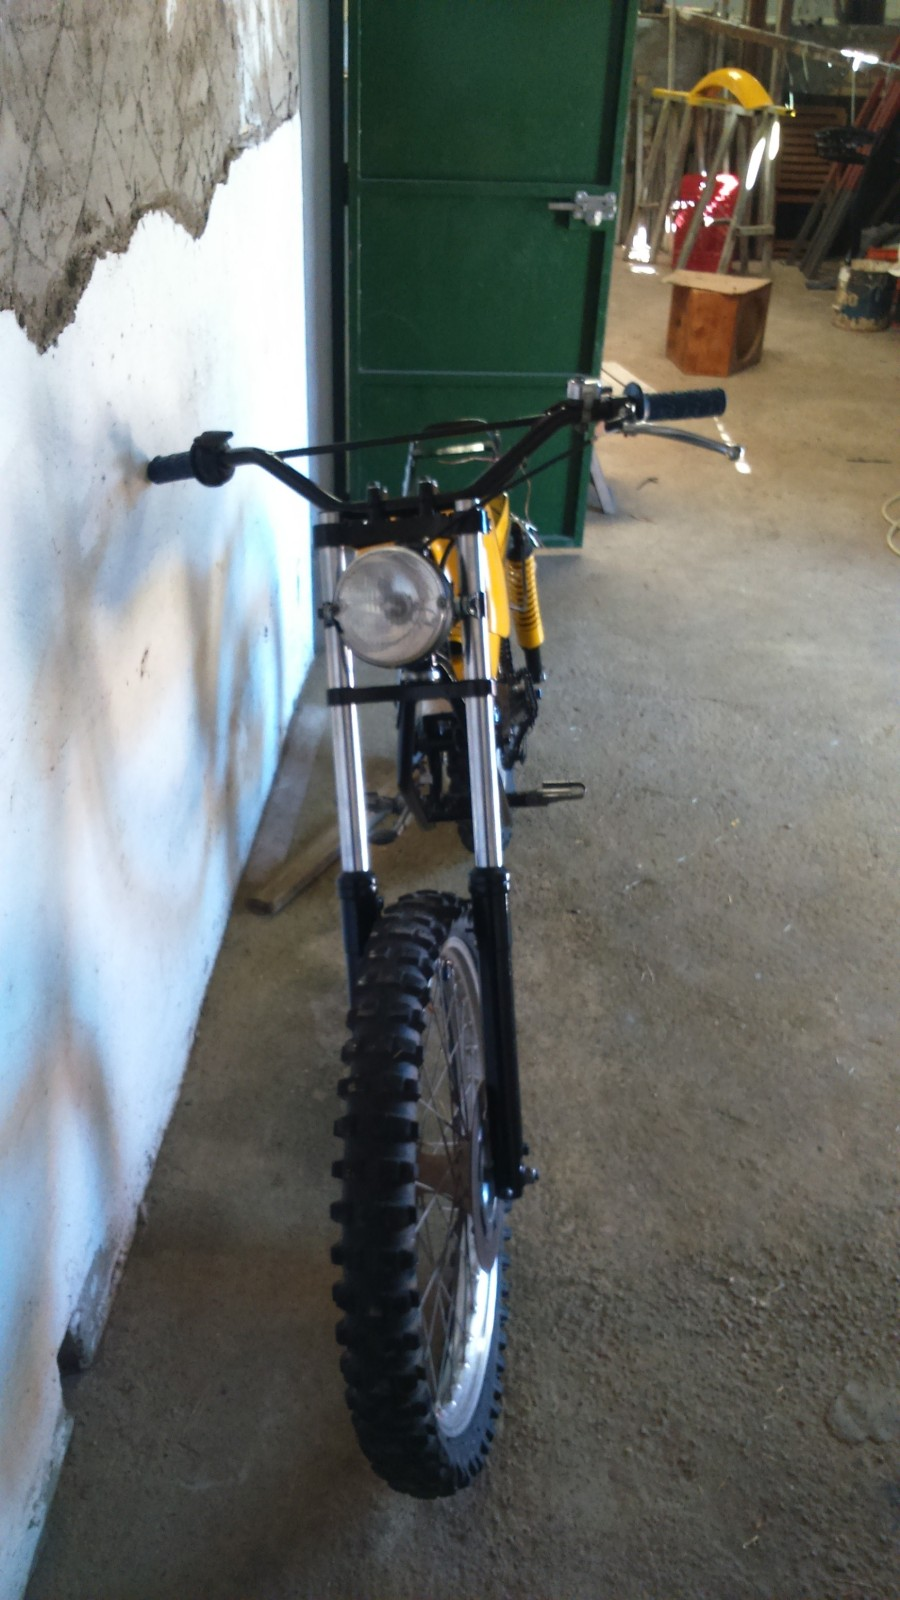 Puch minicross super 1 o 2 ? Mb5zwh